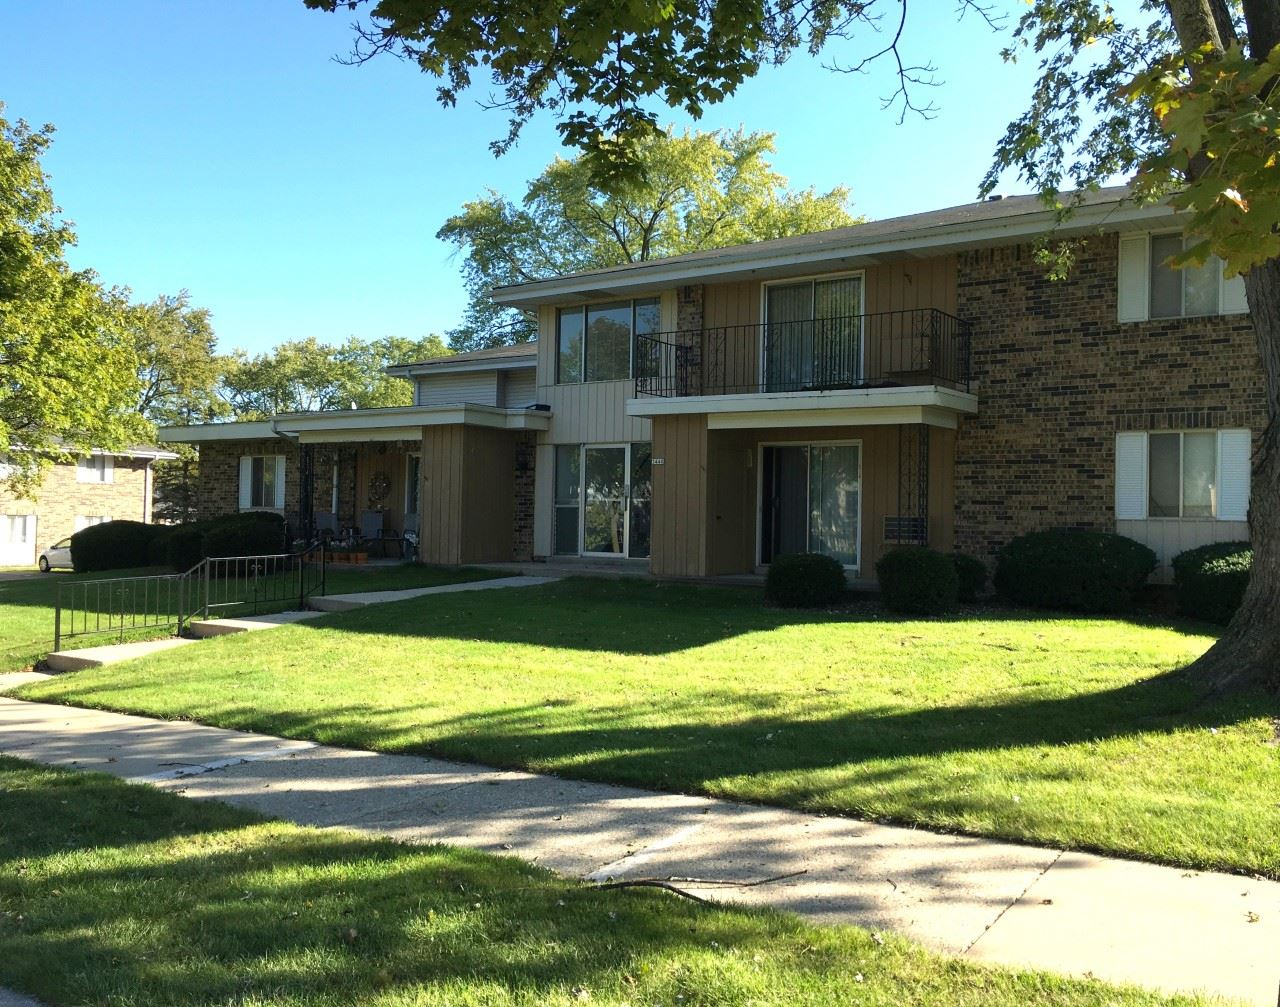 3448 S Taylor Ave #8, Milwaukee, WI 53207 - #: 1685924